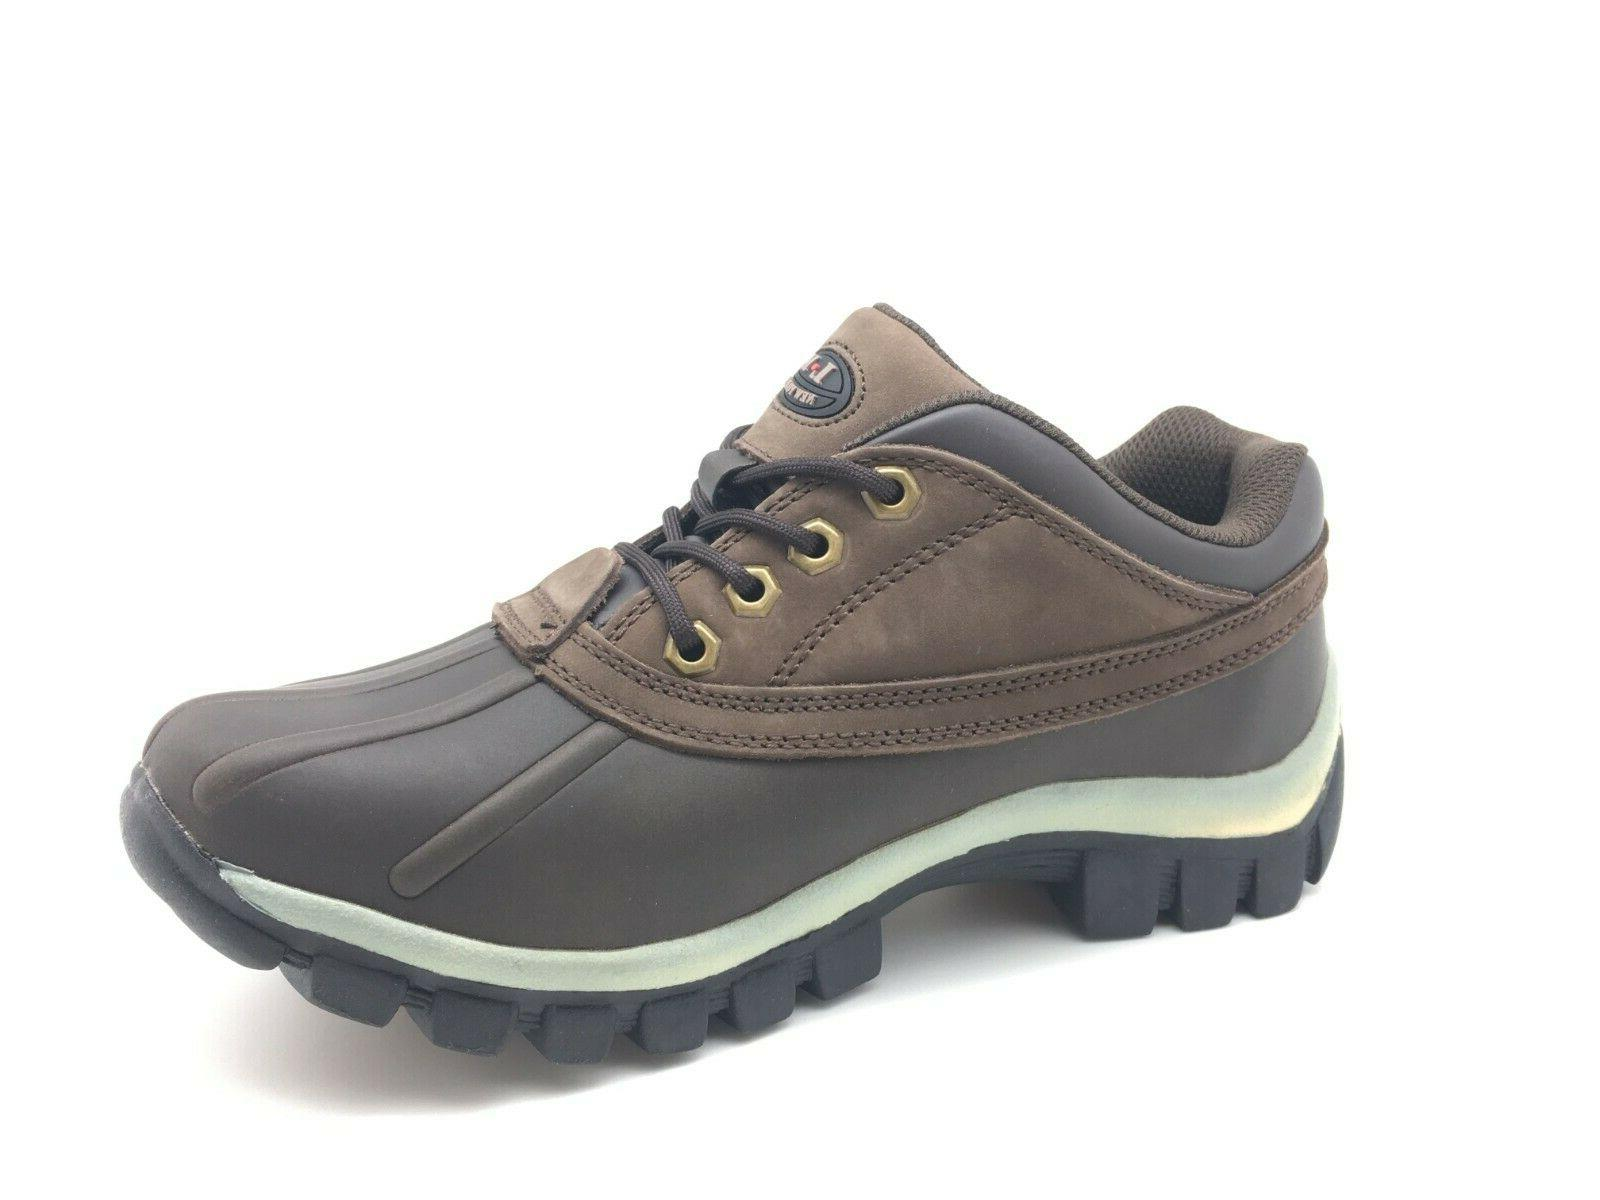 LM Boots Shoes Work Boots Genuine Leather Waterproof